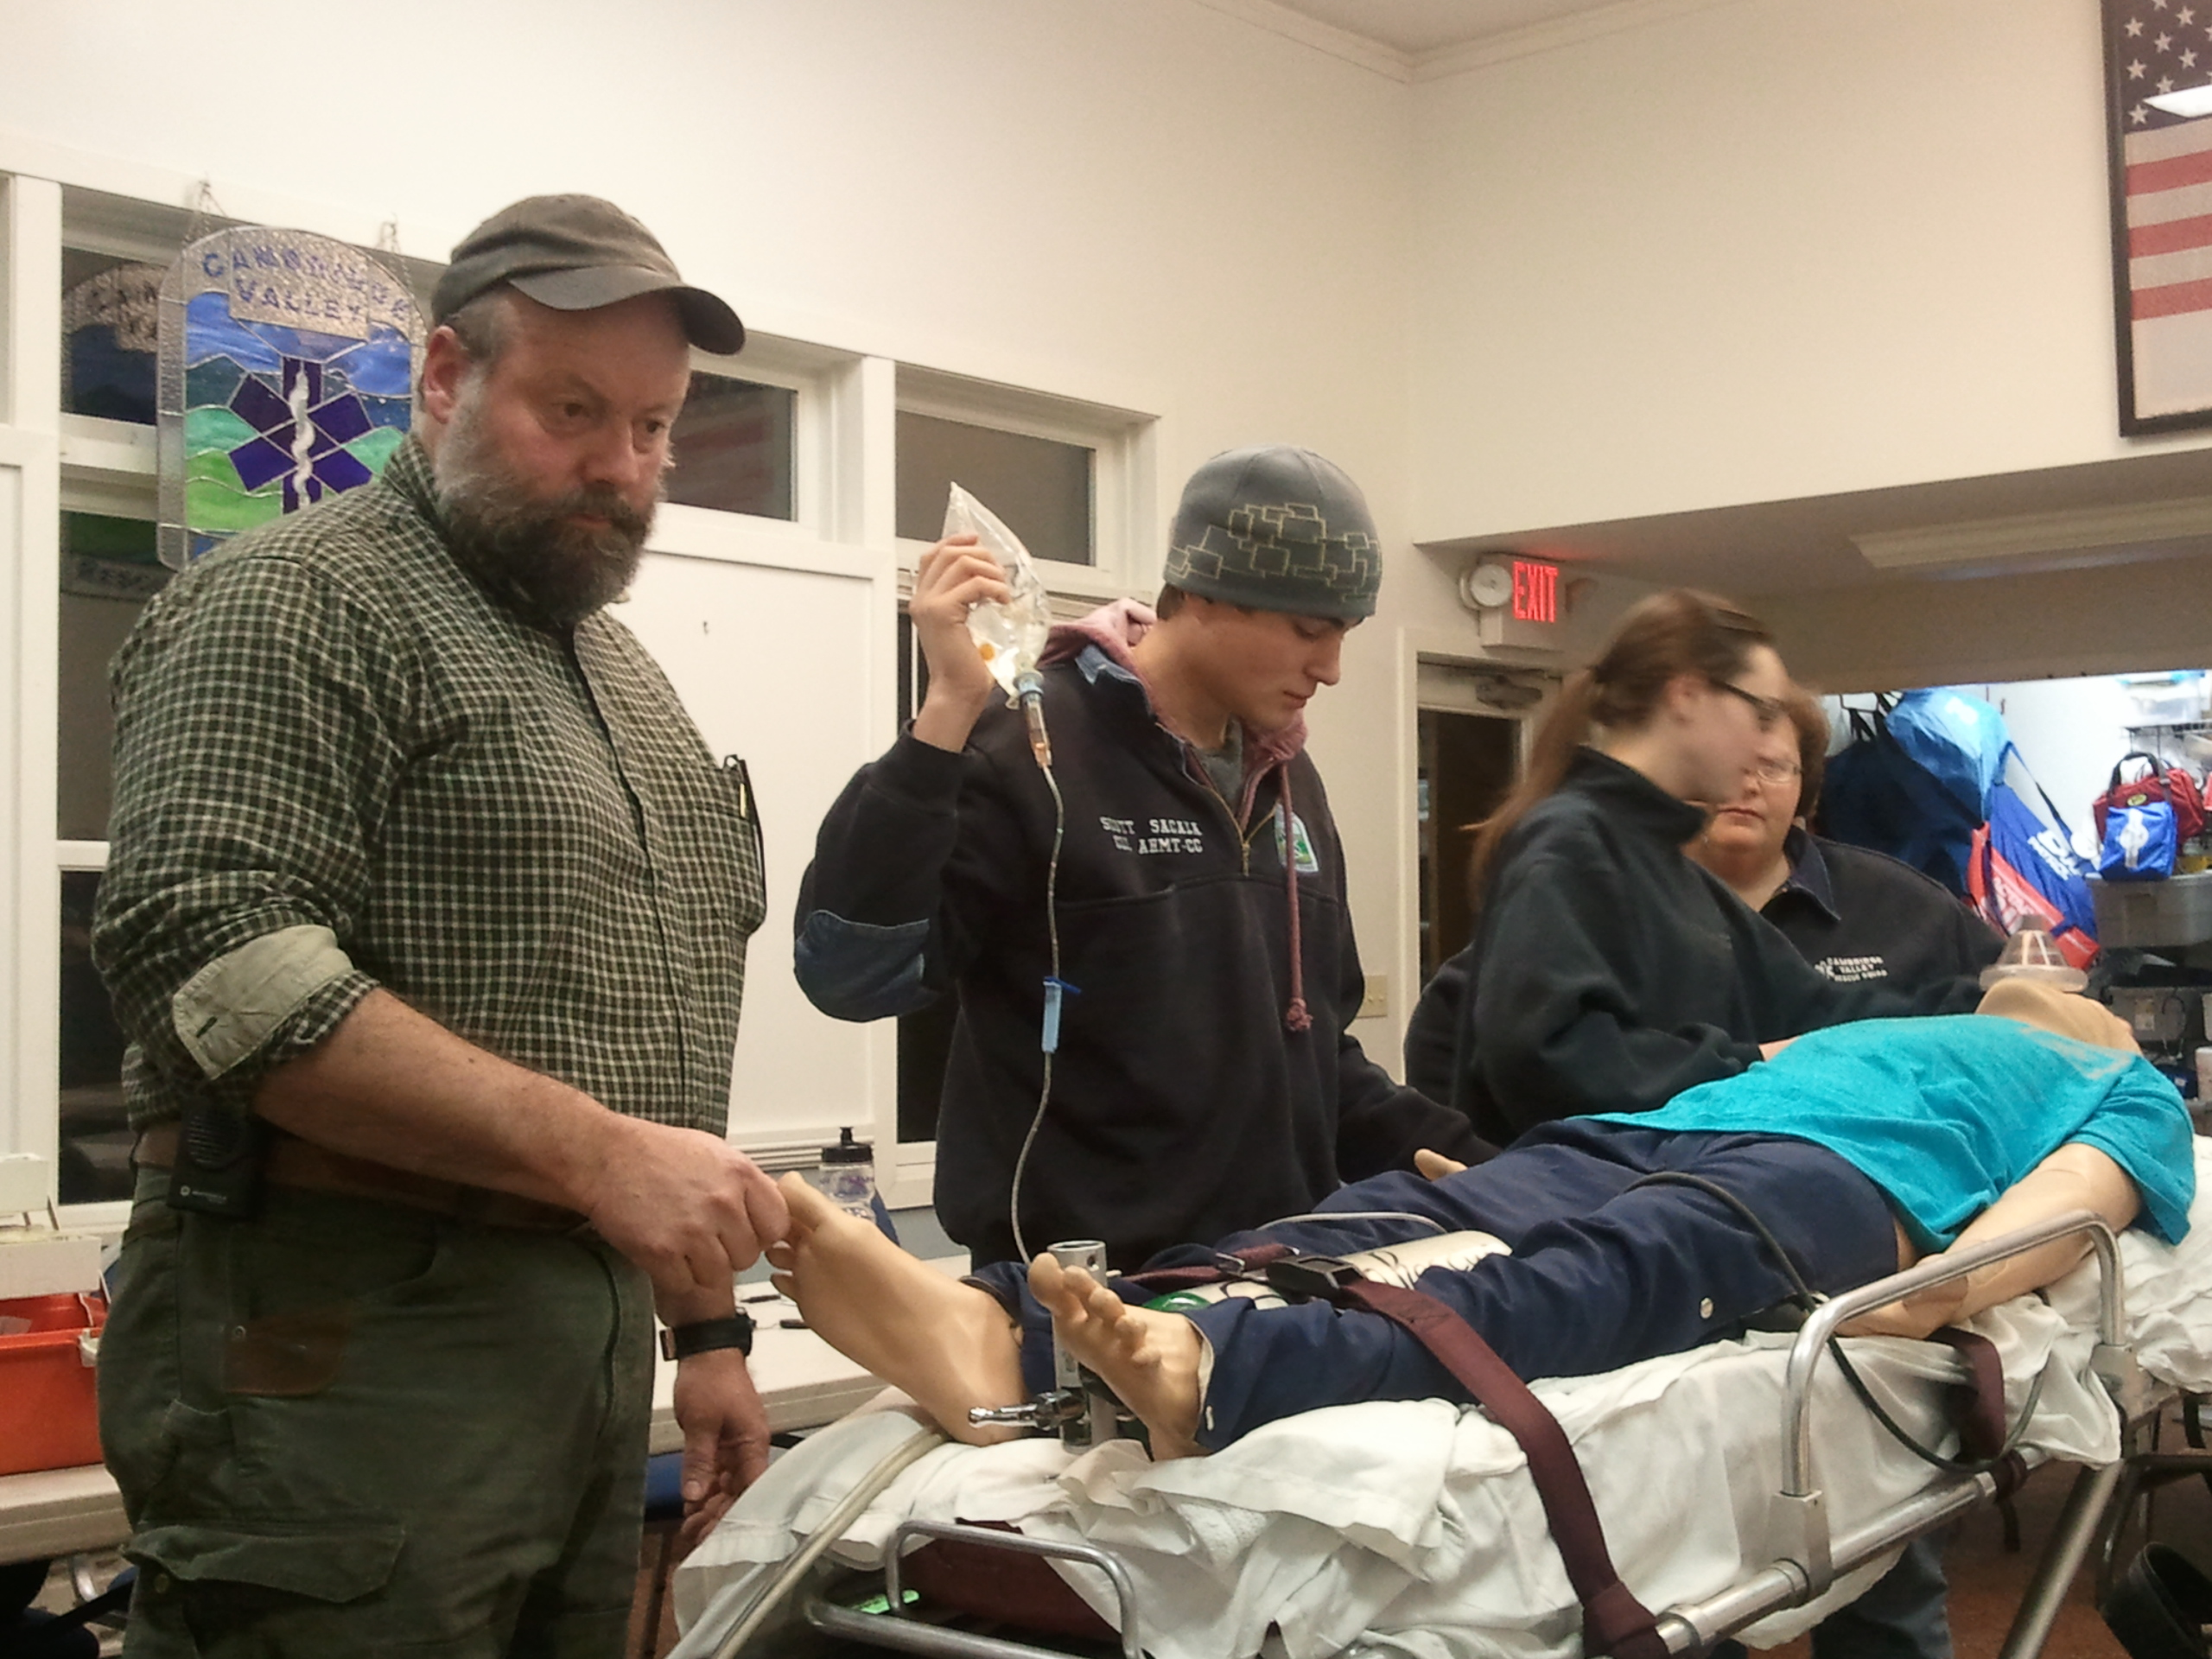 Will Moses, Scott Sacala, Jessica Sillivan and Tammi Gebo run through an ACLS scenario using the training manikin.